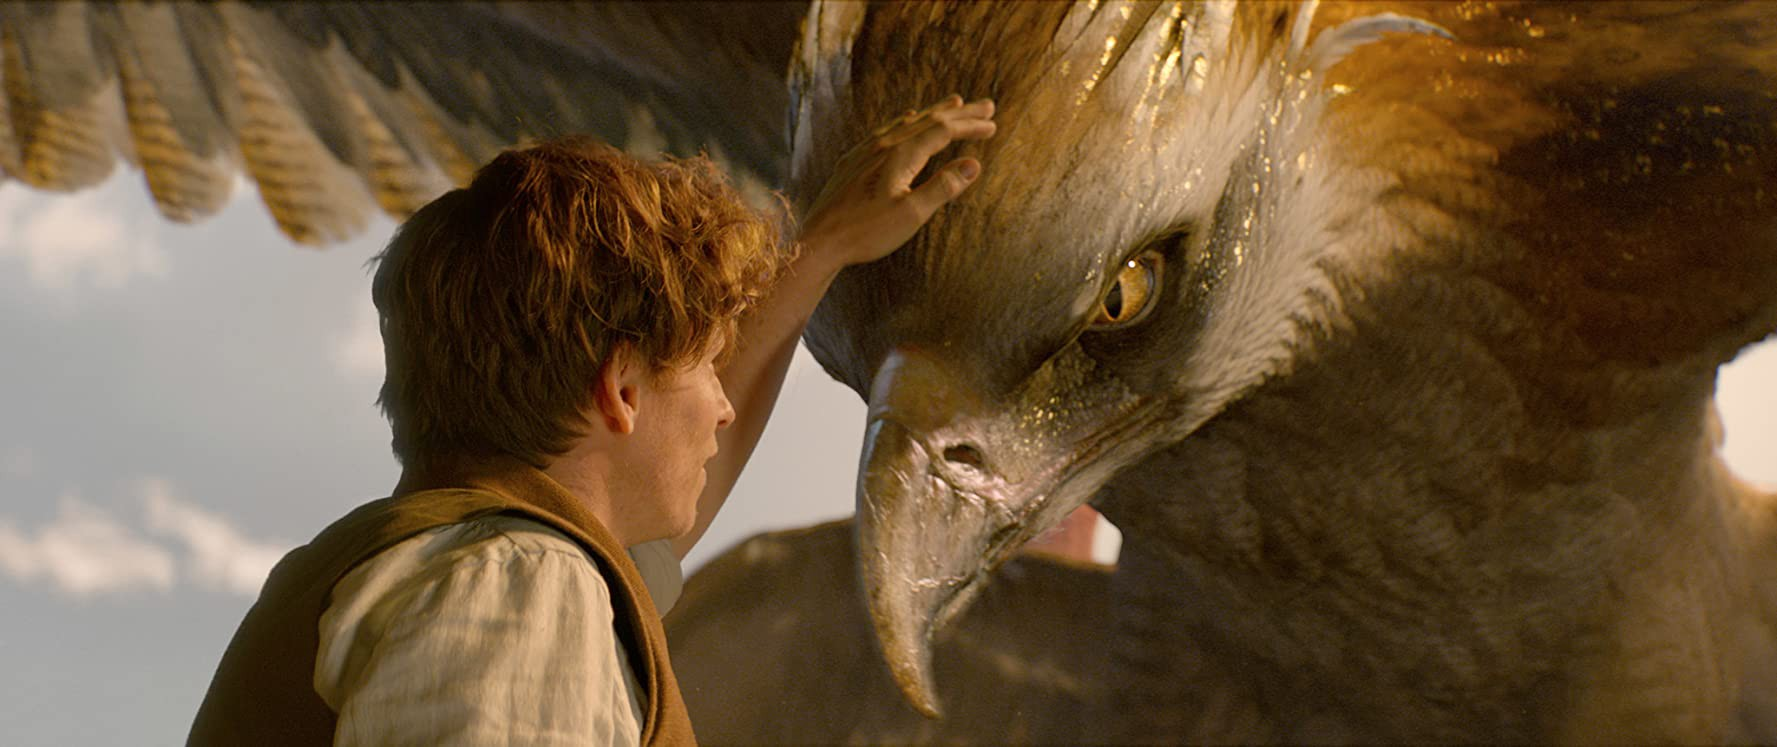 A scene from Fantastic Beasts where Newt Scammander (Eddie Redmayne) pets a Thunderbolt's head.